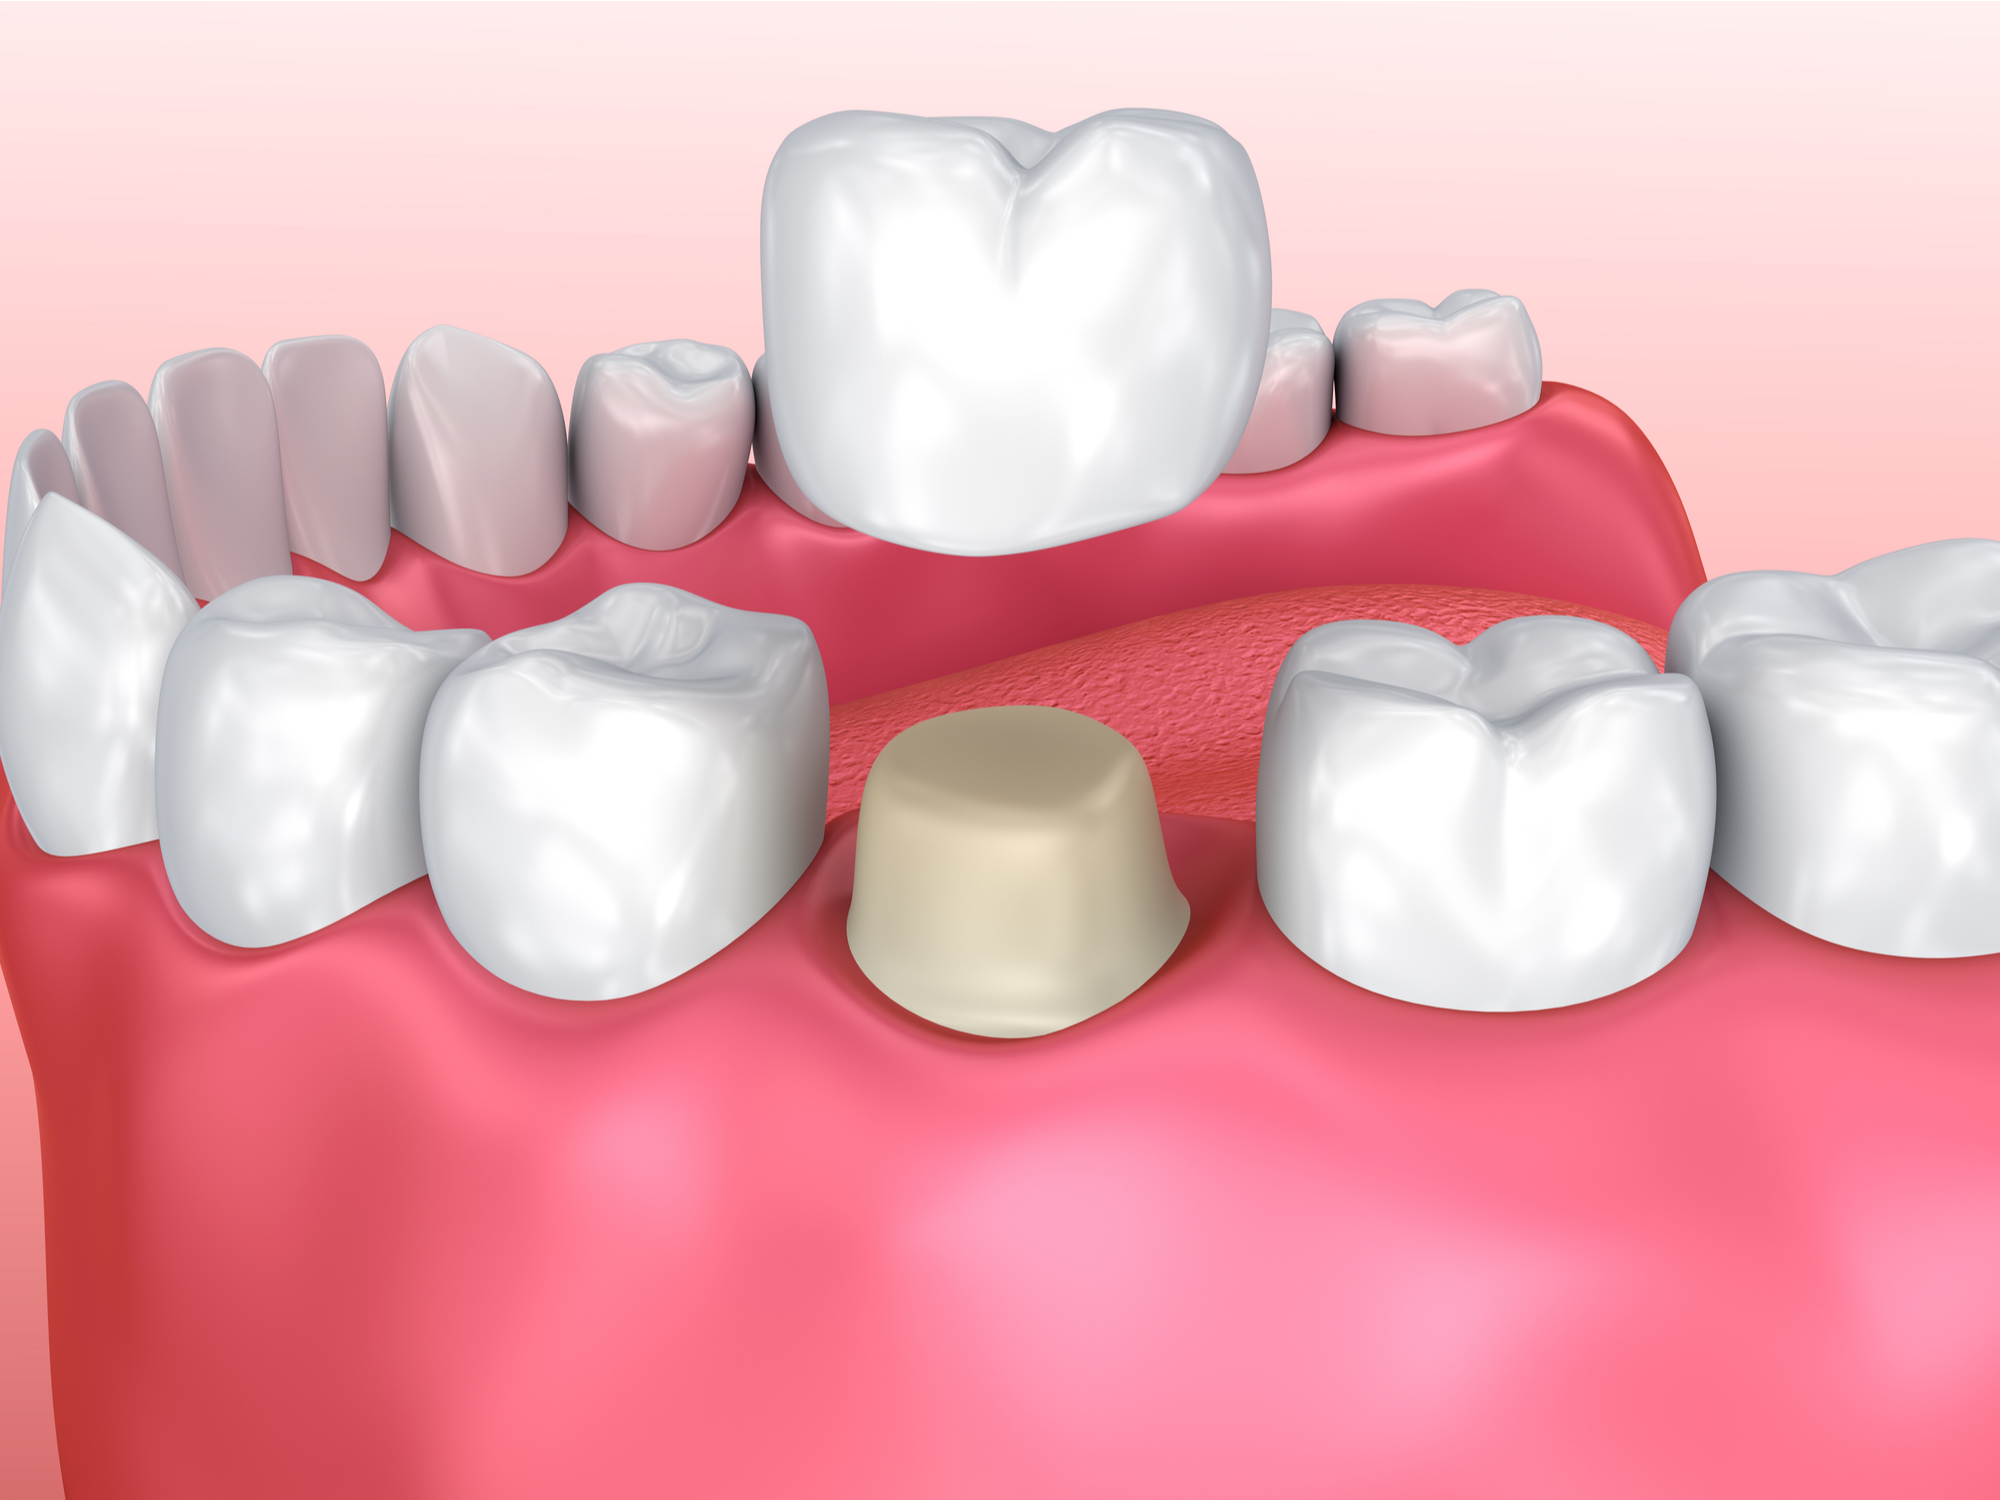 What Happens During a Dental Crown Procedure?